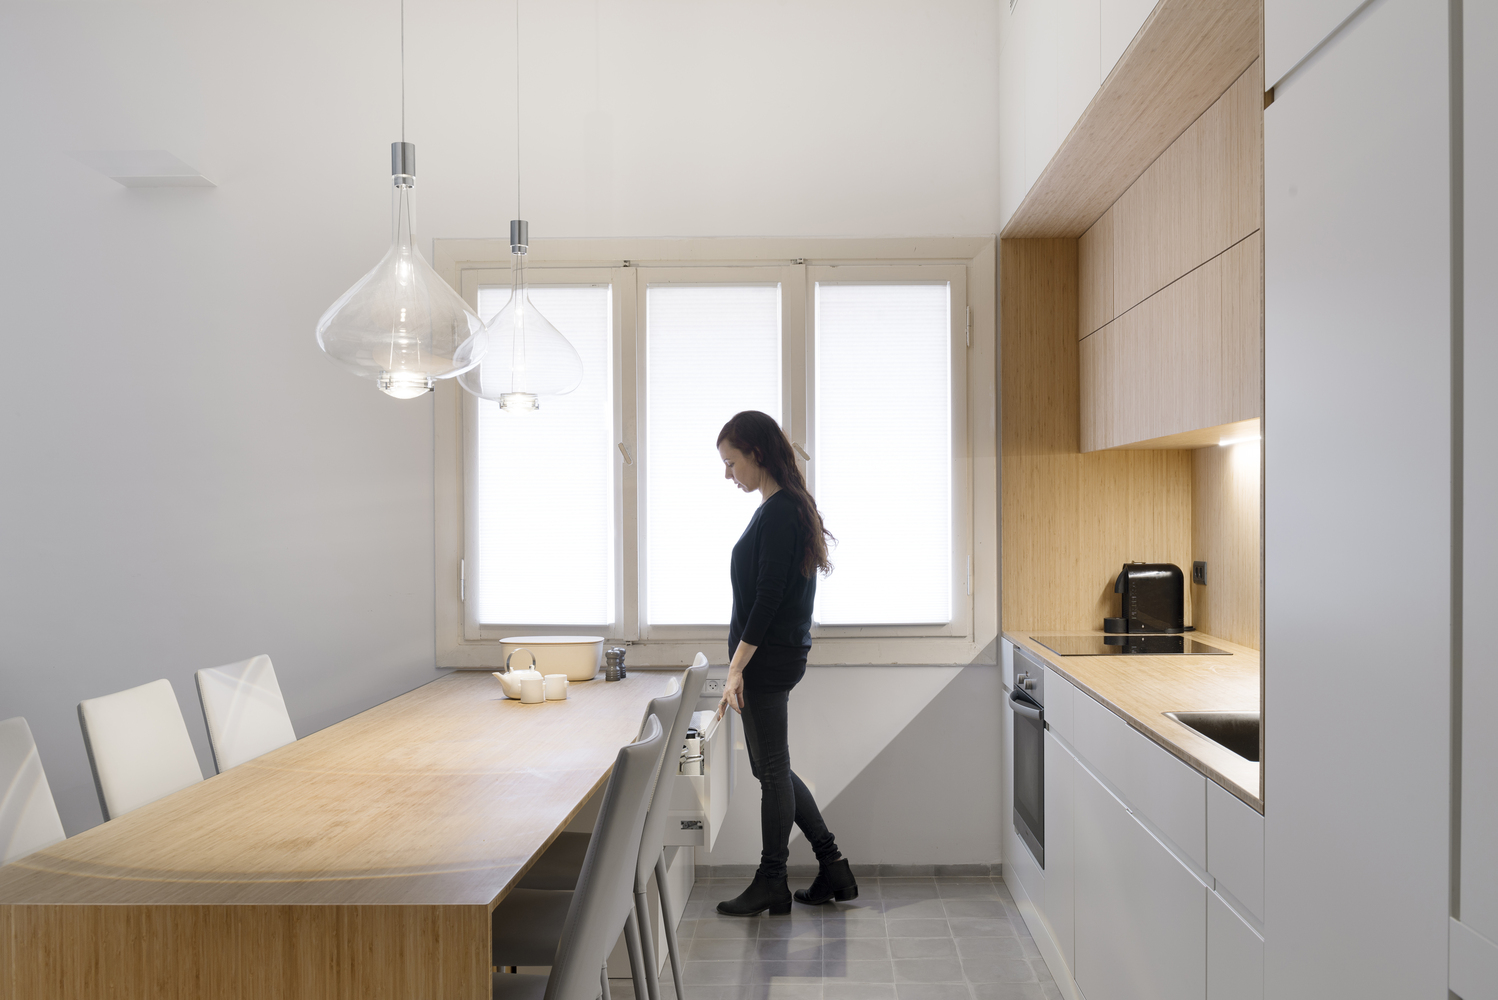 Gallery of Long and Slender / XS Studio for compact design - 6